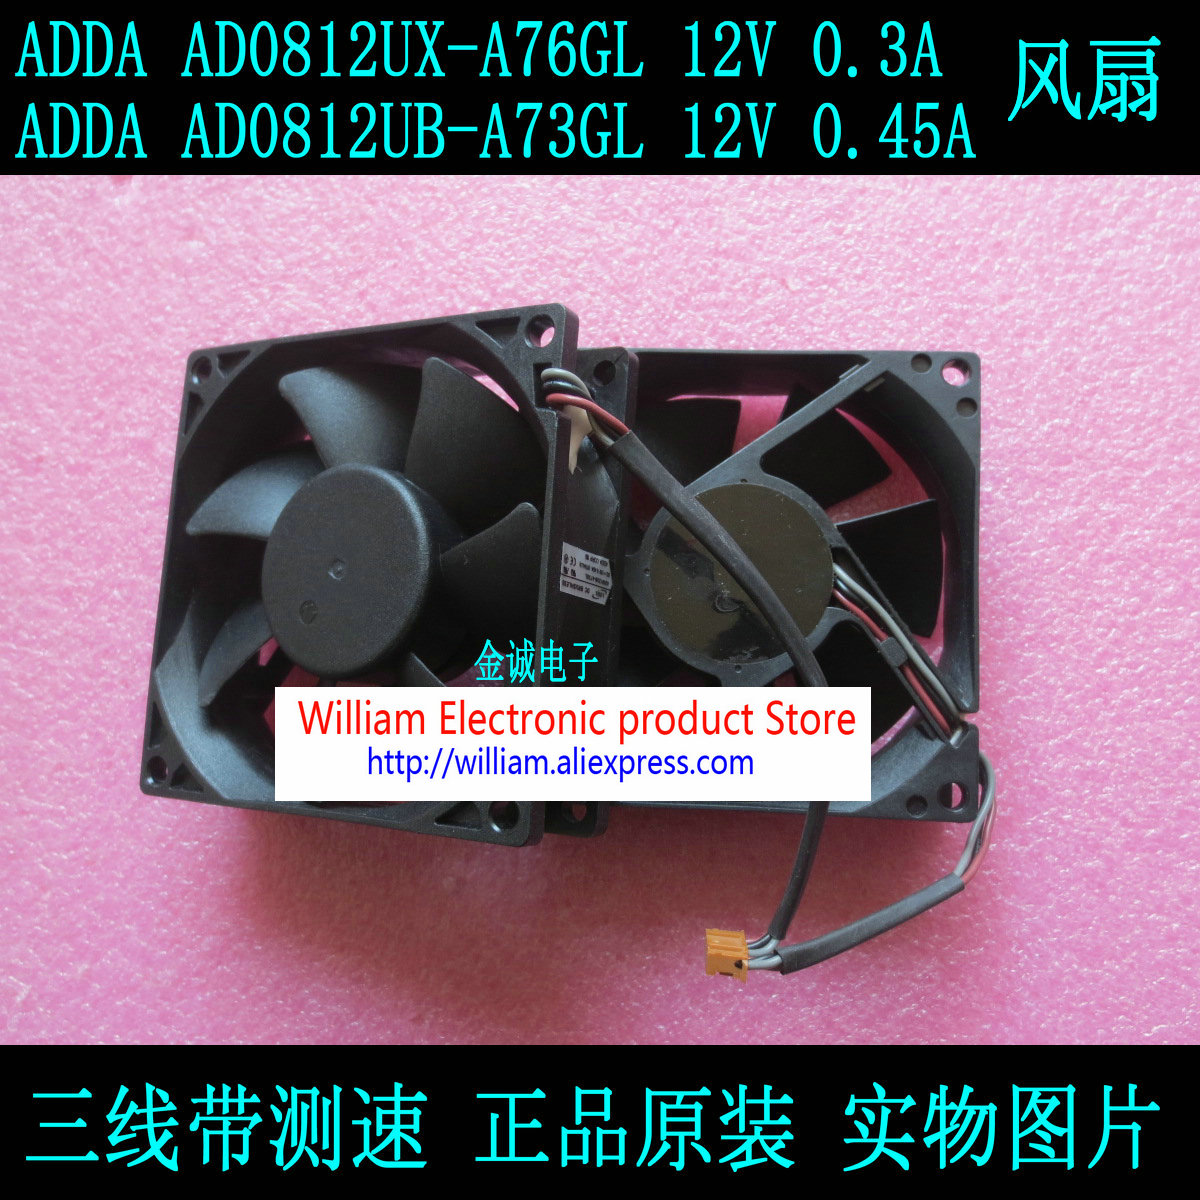 New Original ADDA ad8012ub-a73gl 12v 0.45a ad8012ux-a76gl 12v 0.3a Double Projector Cooling Fan new original bp31 00052a b6025l12d1 three wire projector fan